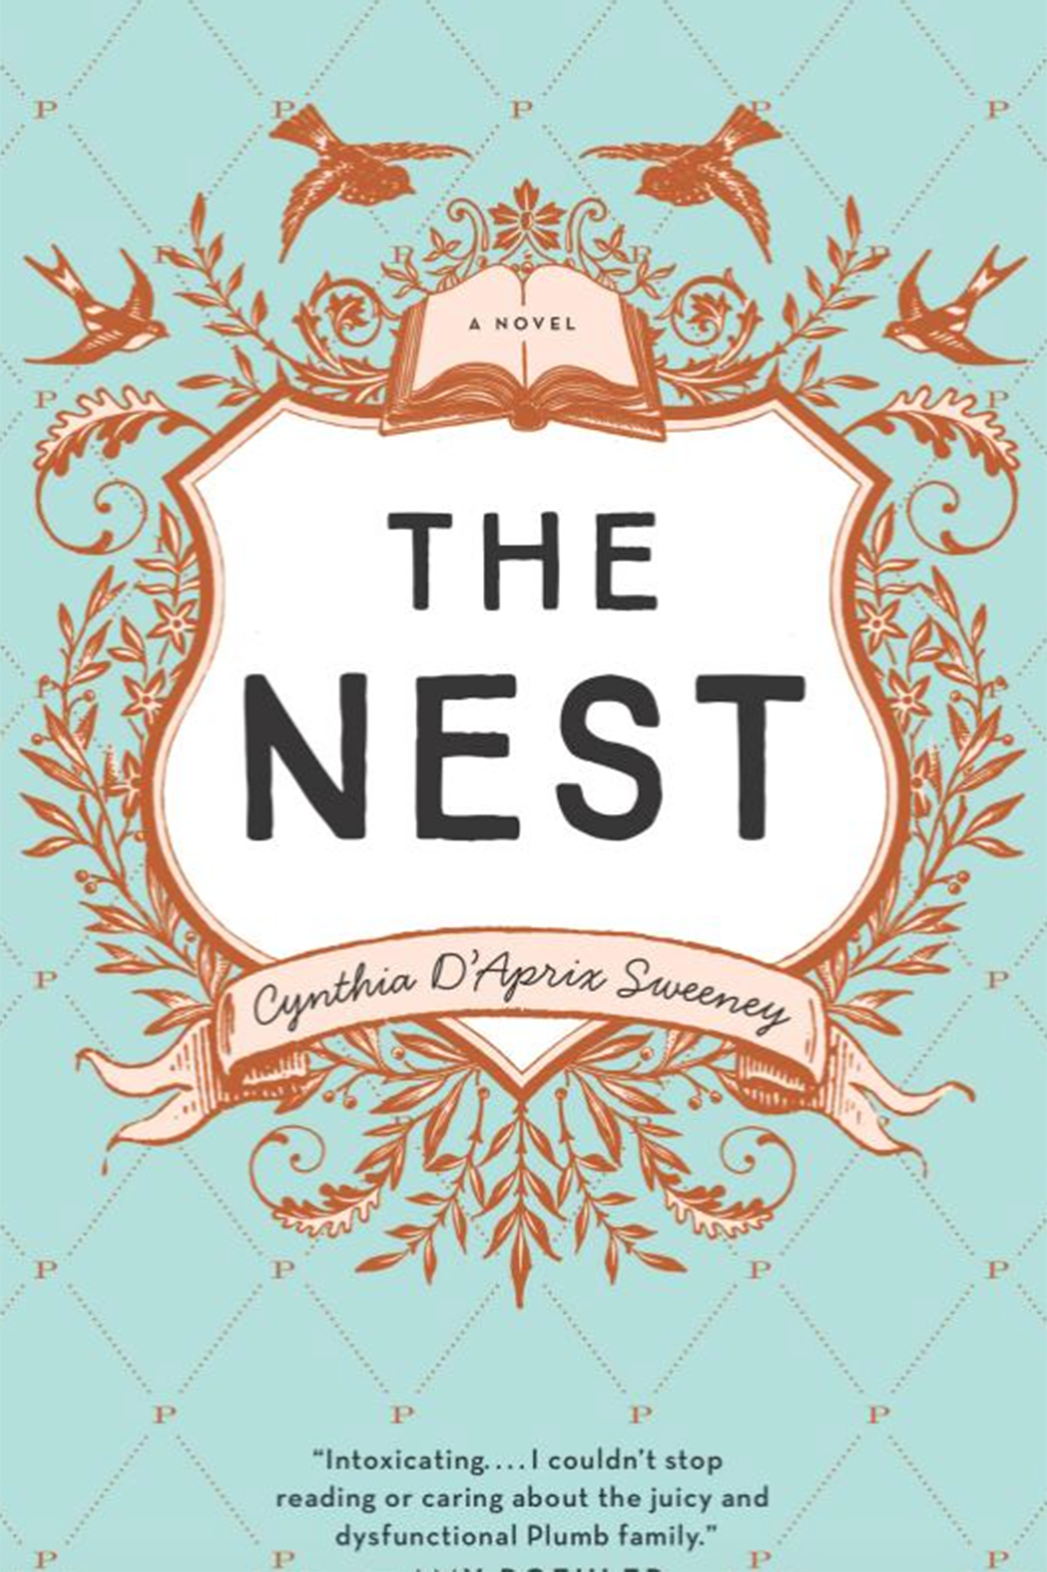 The Nest Book Cover - P 2016